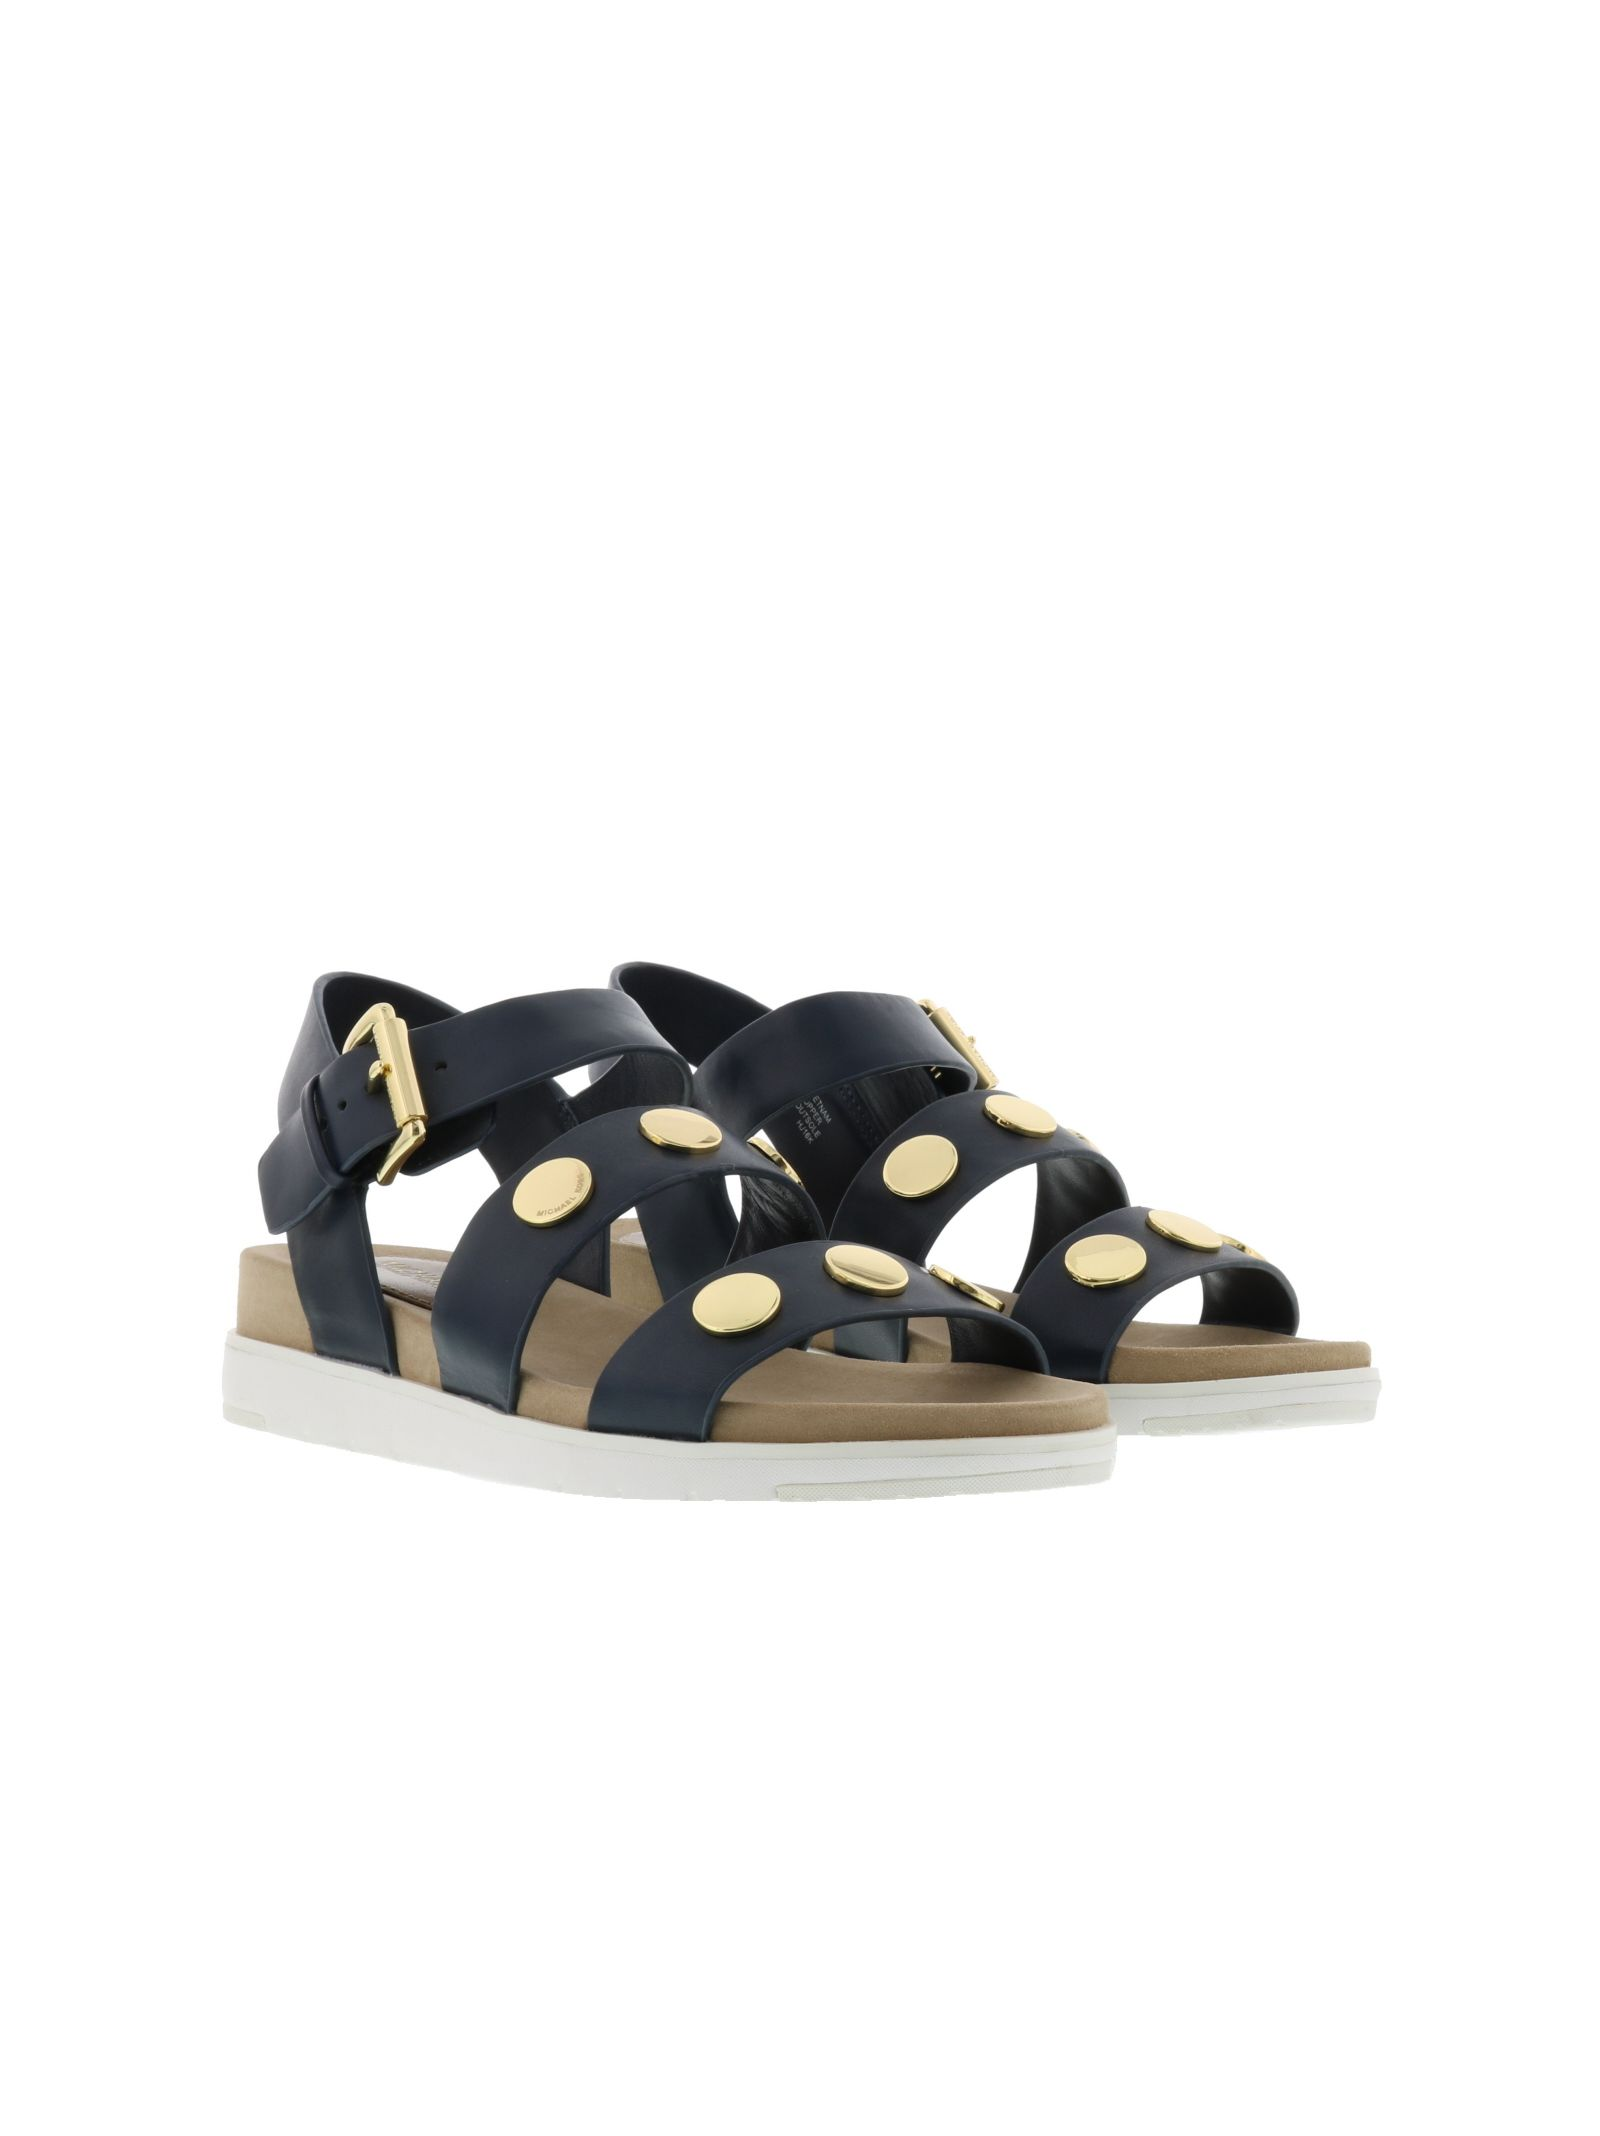 michael kors female michael kors reggie sandals